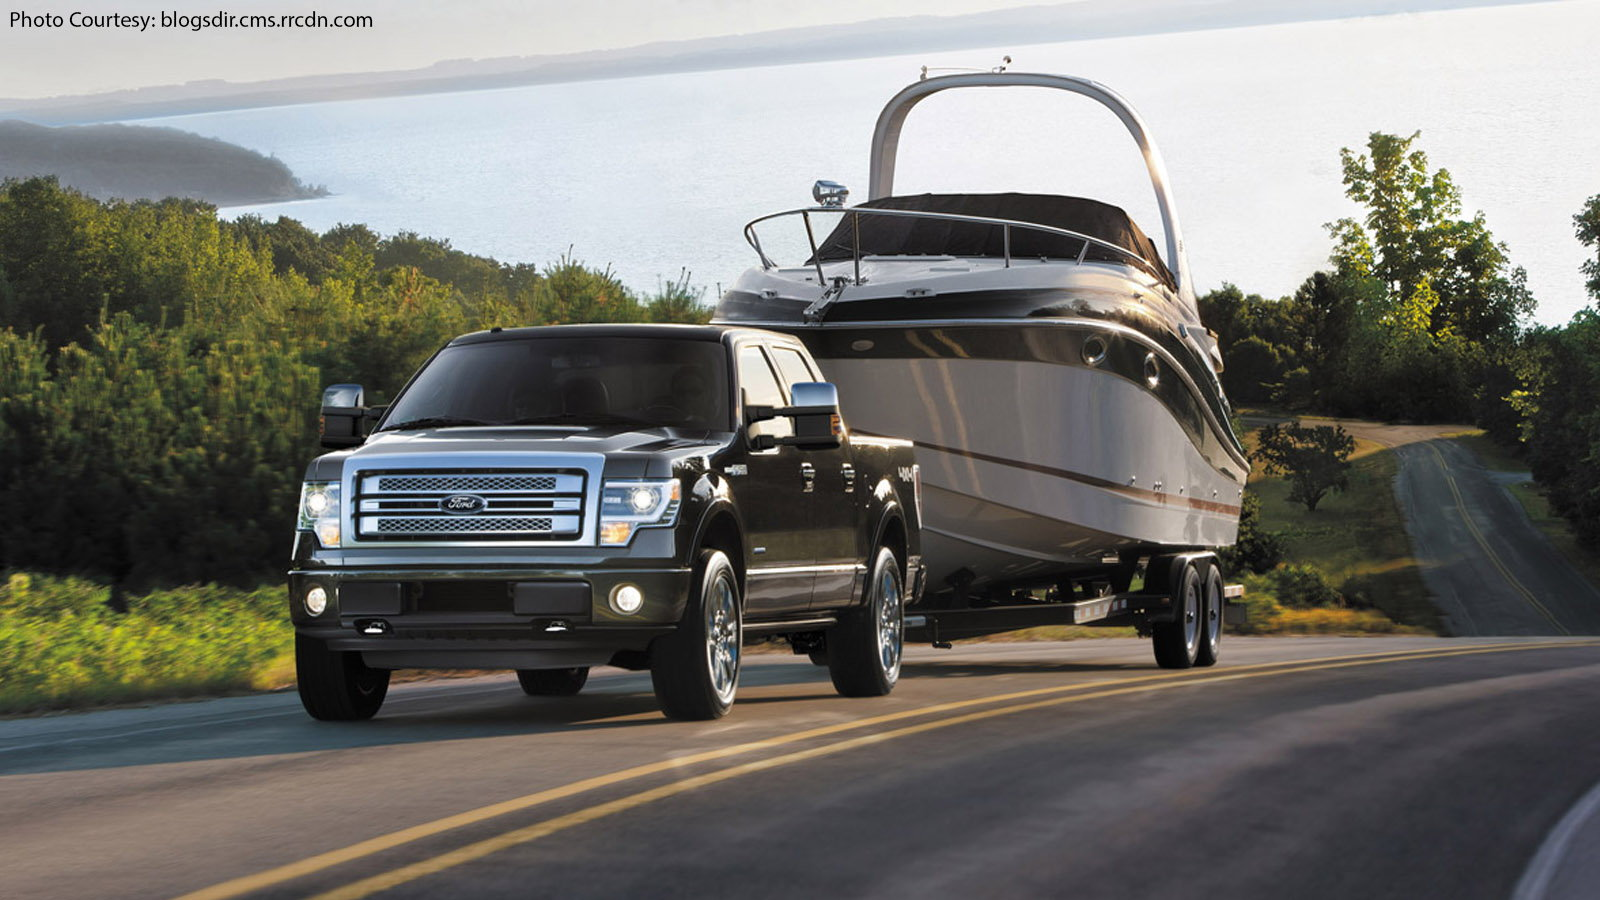 More Than Towing Capacity? Challenge Accepted